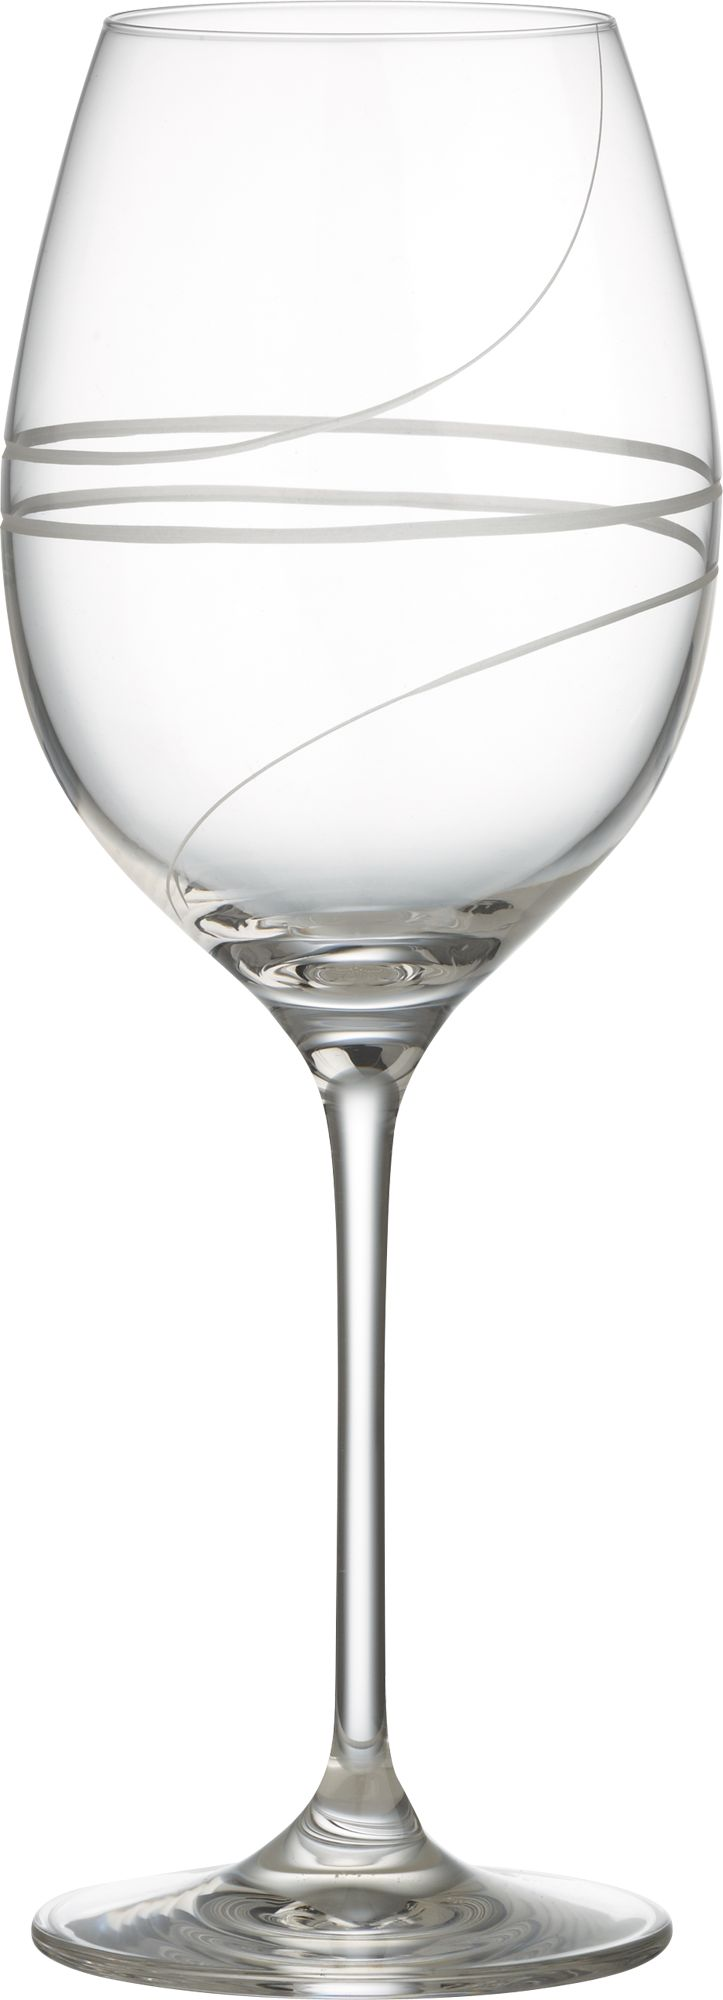 Elegant hand-engraved spirals add élan to the classic tulip wine glass. Modern machine-blown process mimics handblown glass at an affordable price.<br /><br /><NEWTAG/><ul><li>Clear glass</li><li>Hand-engraved and polished design</li><li>Diamond-cut and fire-polished rim</li><li>Top-rack dishwasher-safe</li><li>Made in Slovakia</li></ul><br />